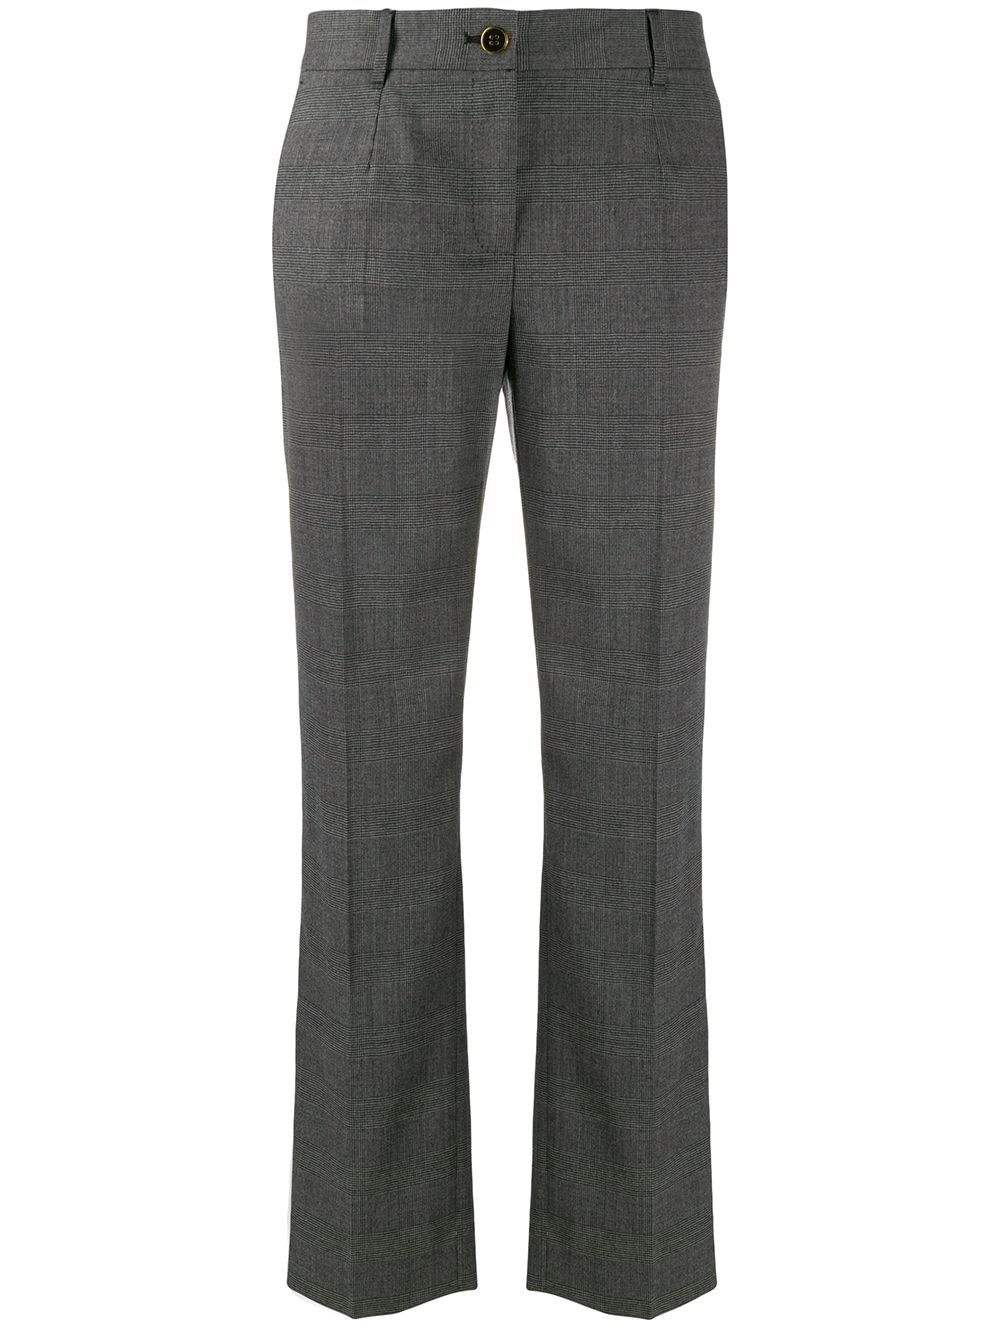 Dolce & Gabbana Houndstooth Trousers